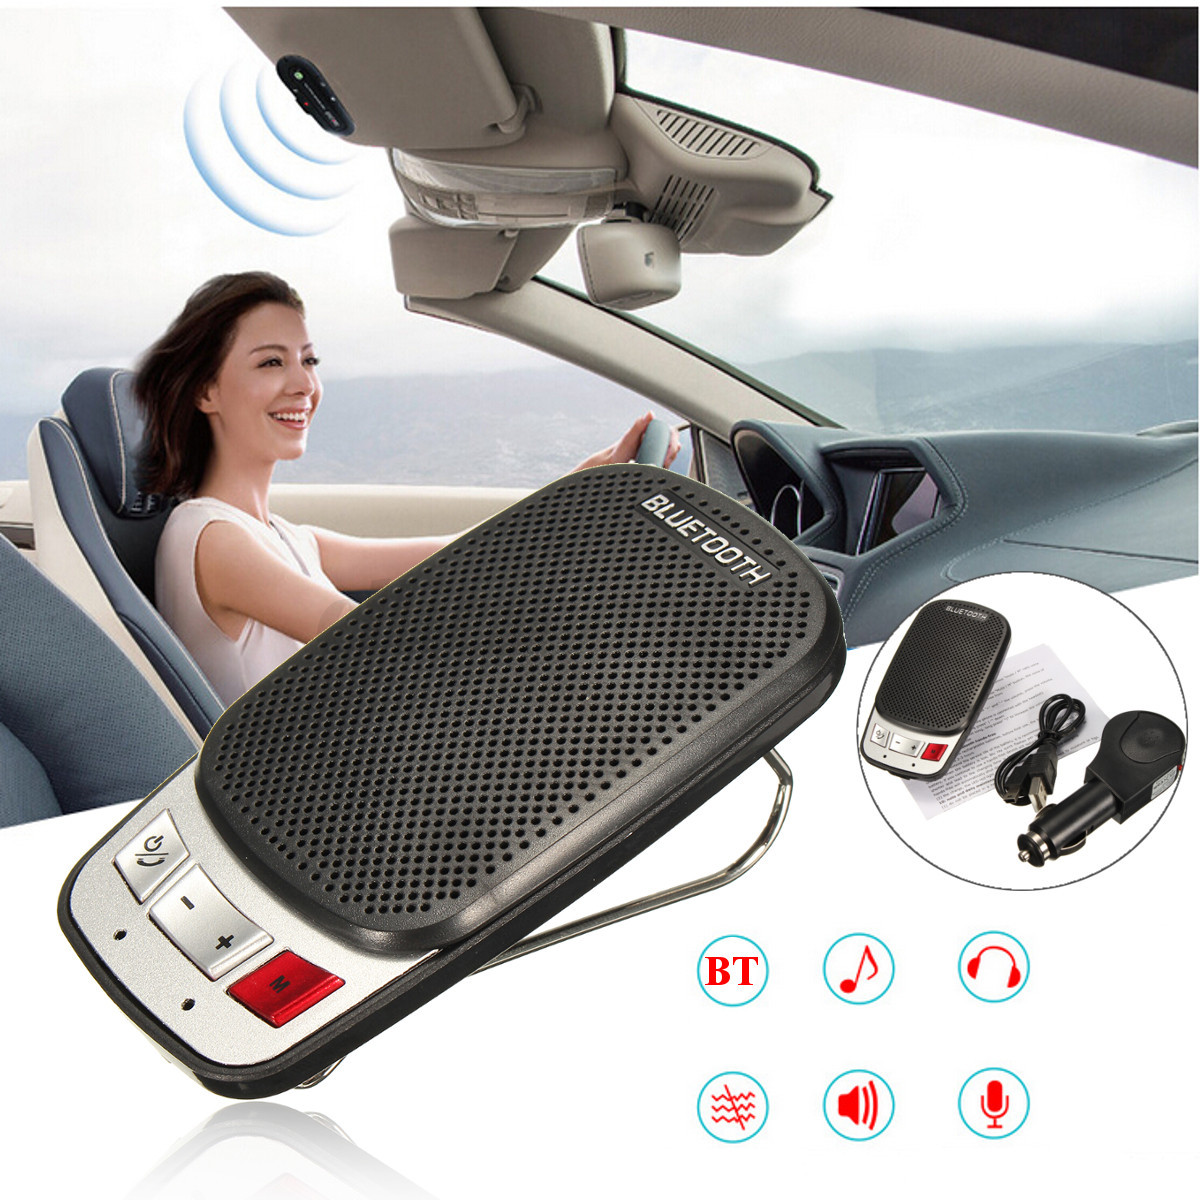 Kit Bluetooth Manos Libres Inalámbrica Bluetooth Manos Libres Kit Coche Altavoz